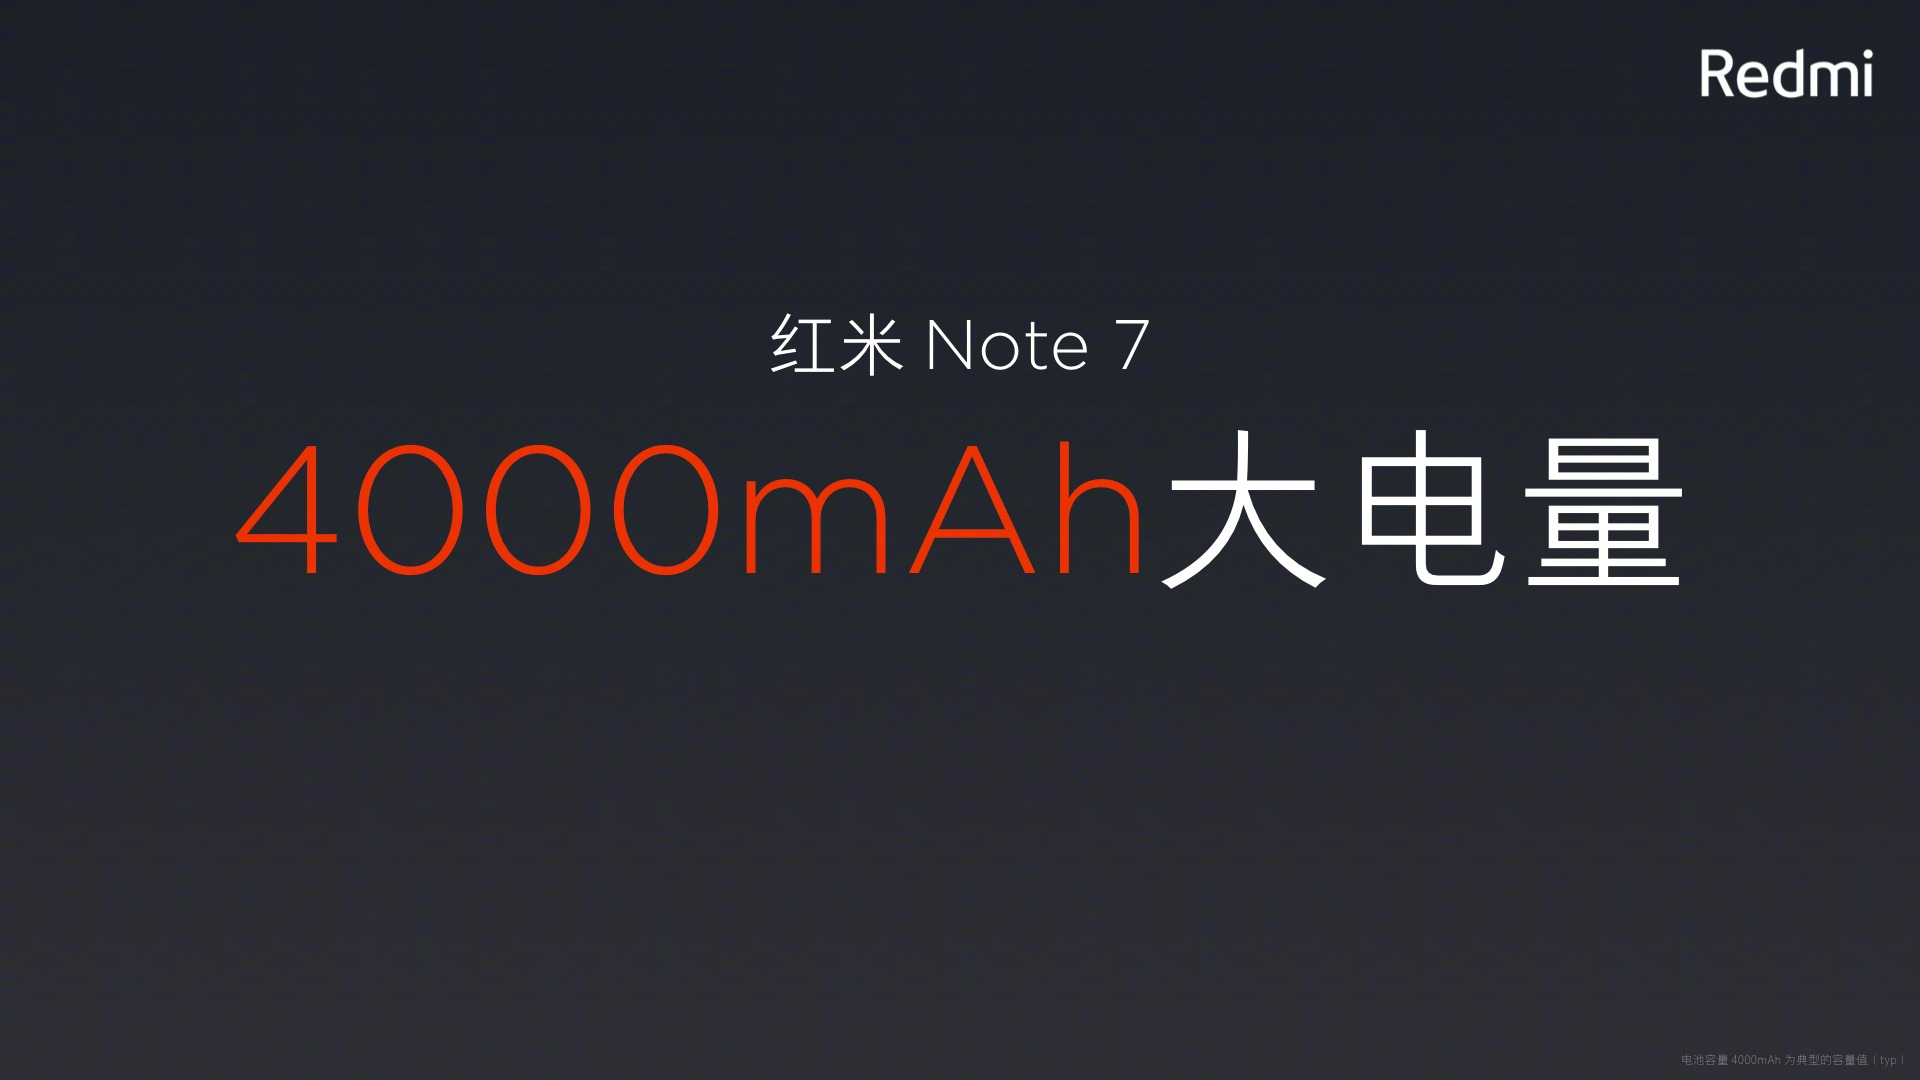 Redmi Note 7 with Snapdragon 660 & 48MP camera launched at 999 Yuan